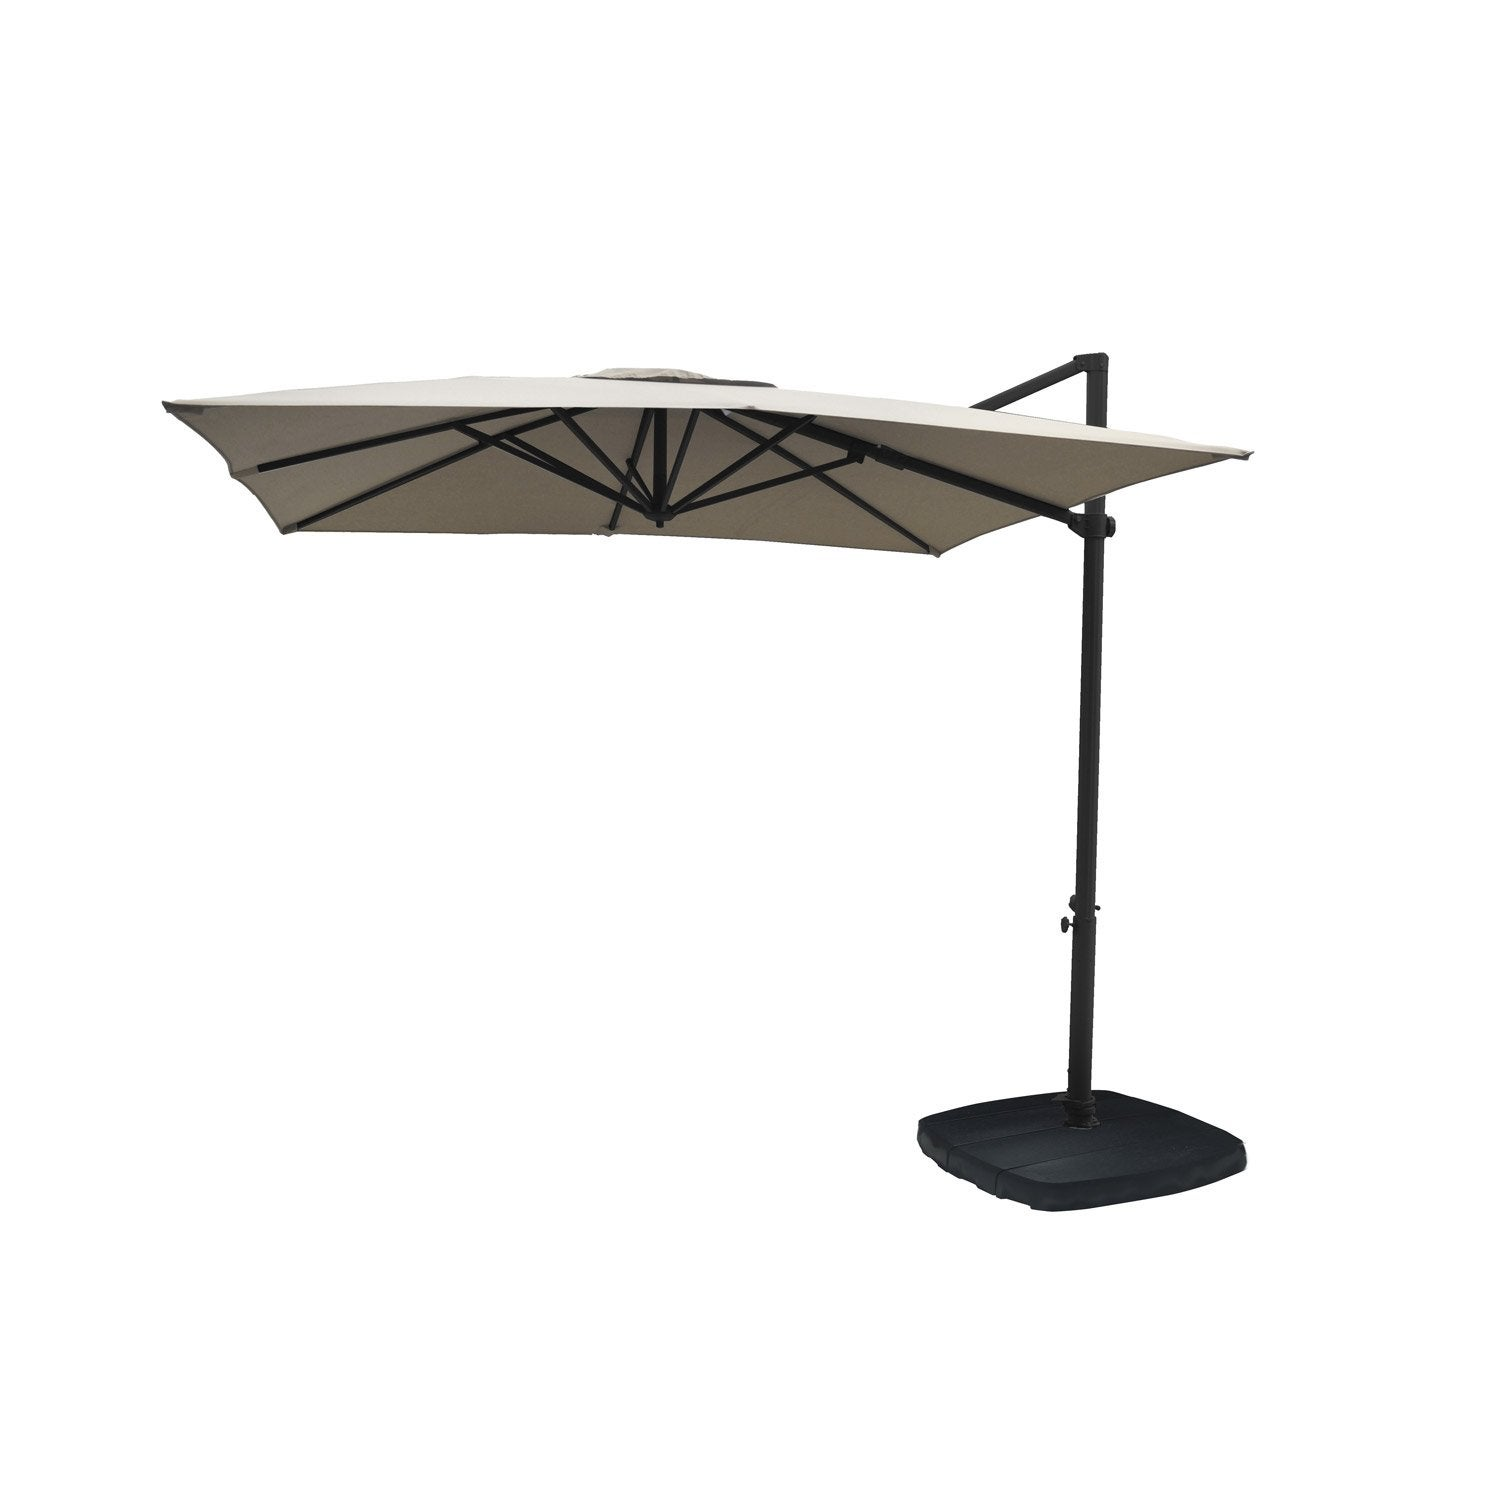 sch ma r gulation plancher chauffant parasol d port leroy merlin. Black Bedroom Furniture Sets. Home Design Ideas